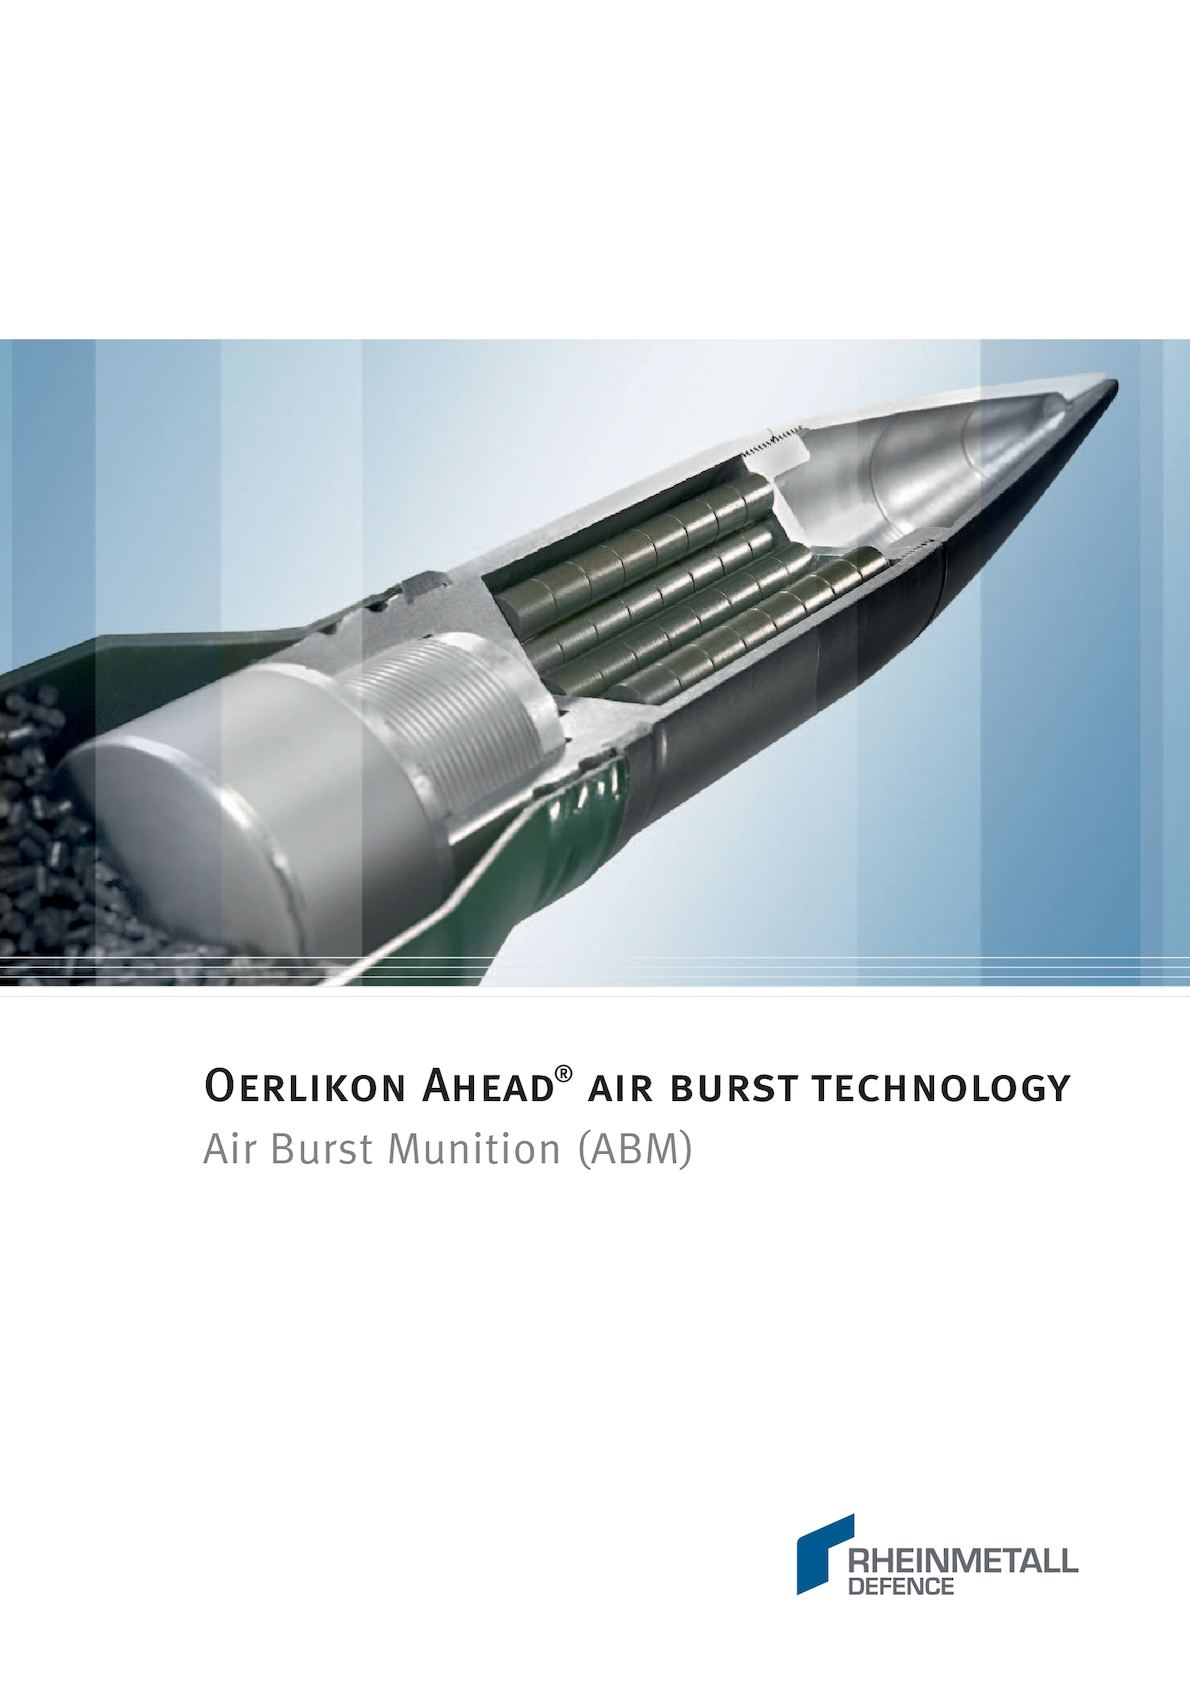 OC2050Ce020608 Ahead Air Burst Technology ABM